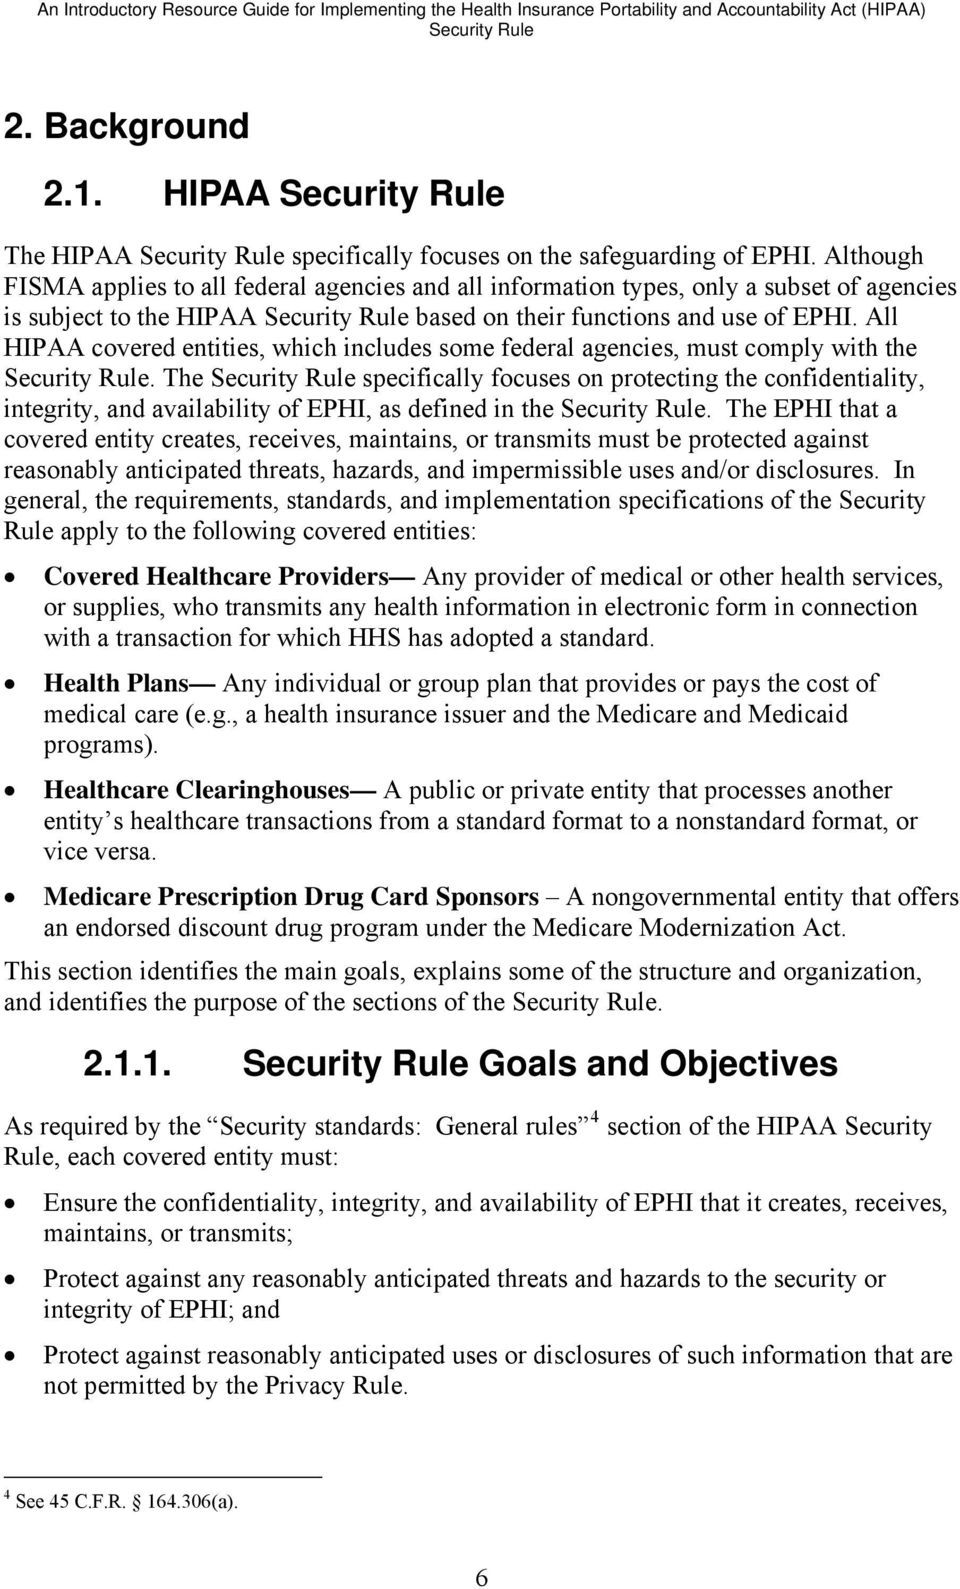 Although FISMA applies to all federal agencies and all information types, only a subset of agencies is subject to the HIPAA Security Rule based on their functions and use of EPHI.